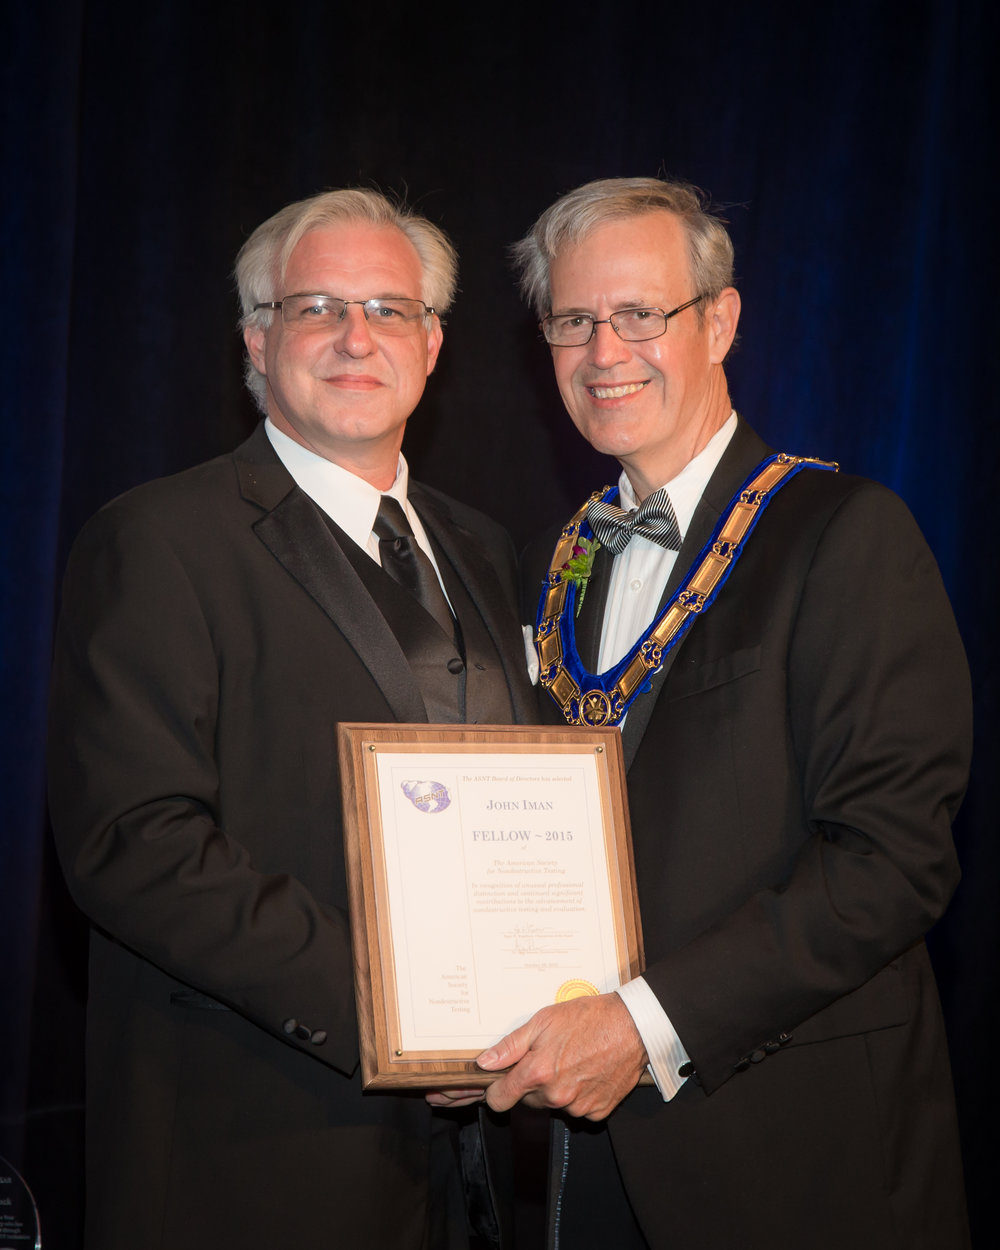 John T. Iman receives ASNT Fellow Award from ASNT past-president L. Terry Claussing.